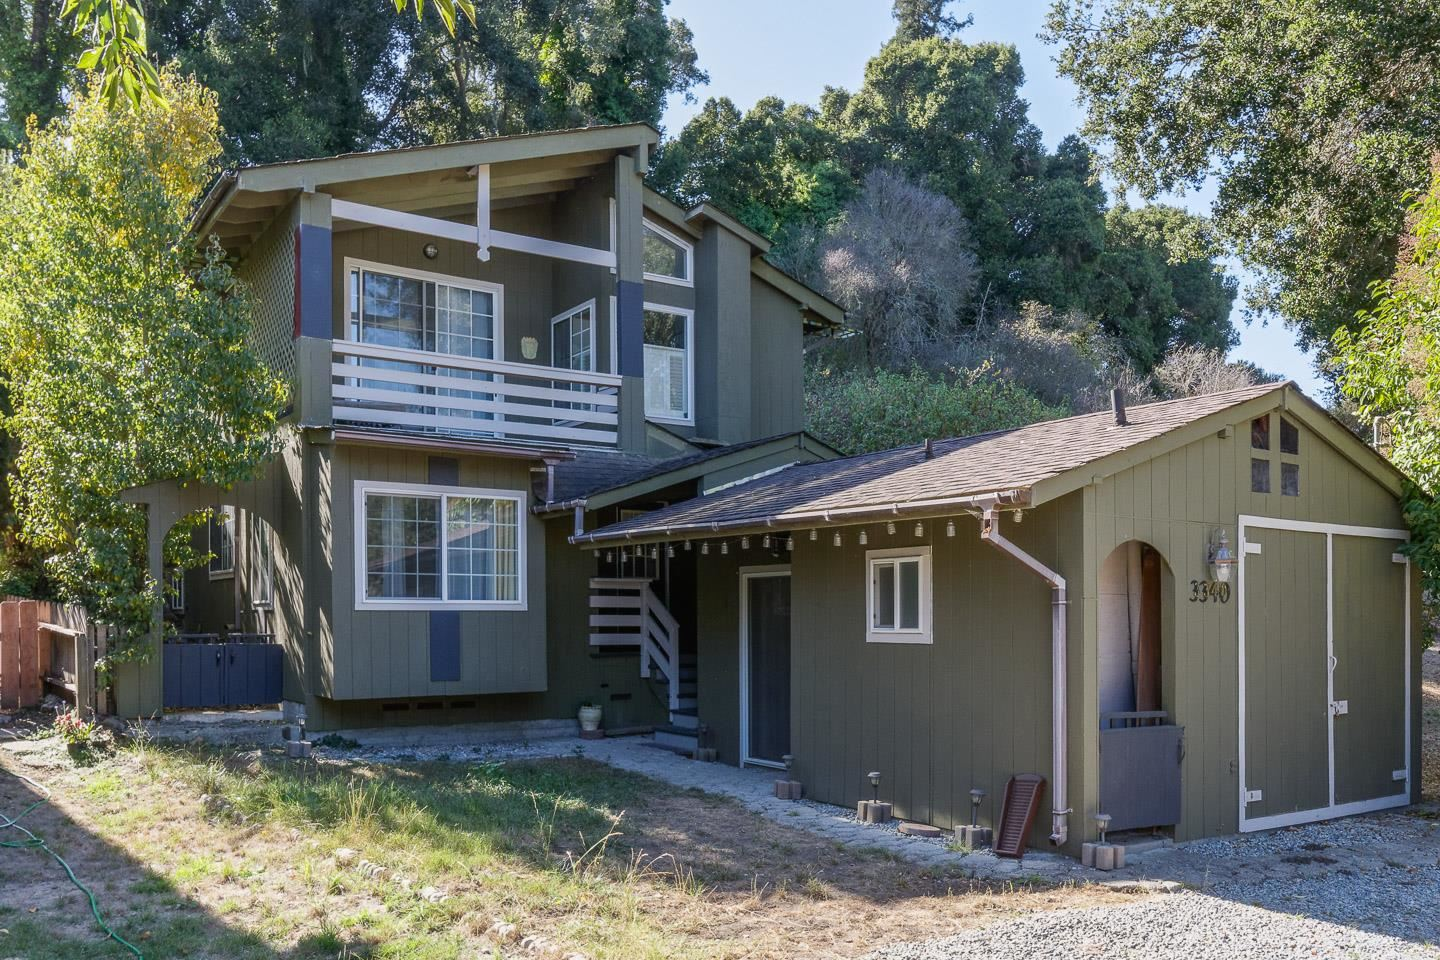 Photo for 3340 S Polo DR, APTOS, CA 95003 (MLS # ML81774636)